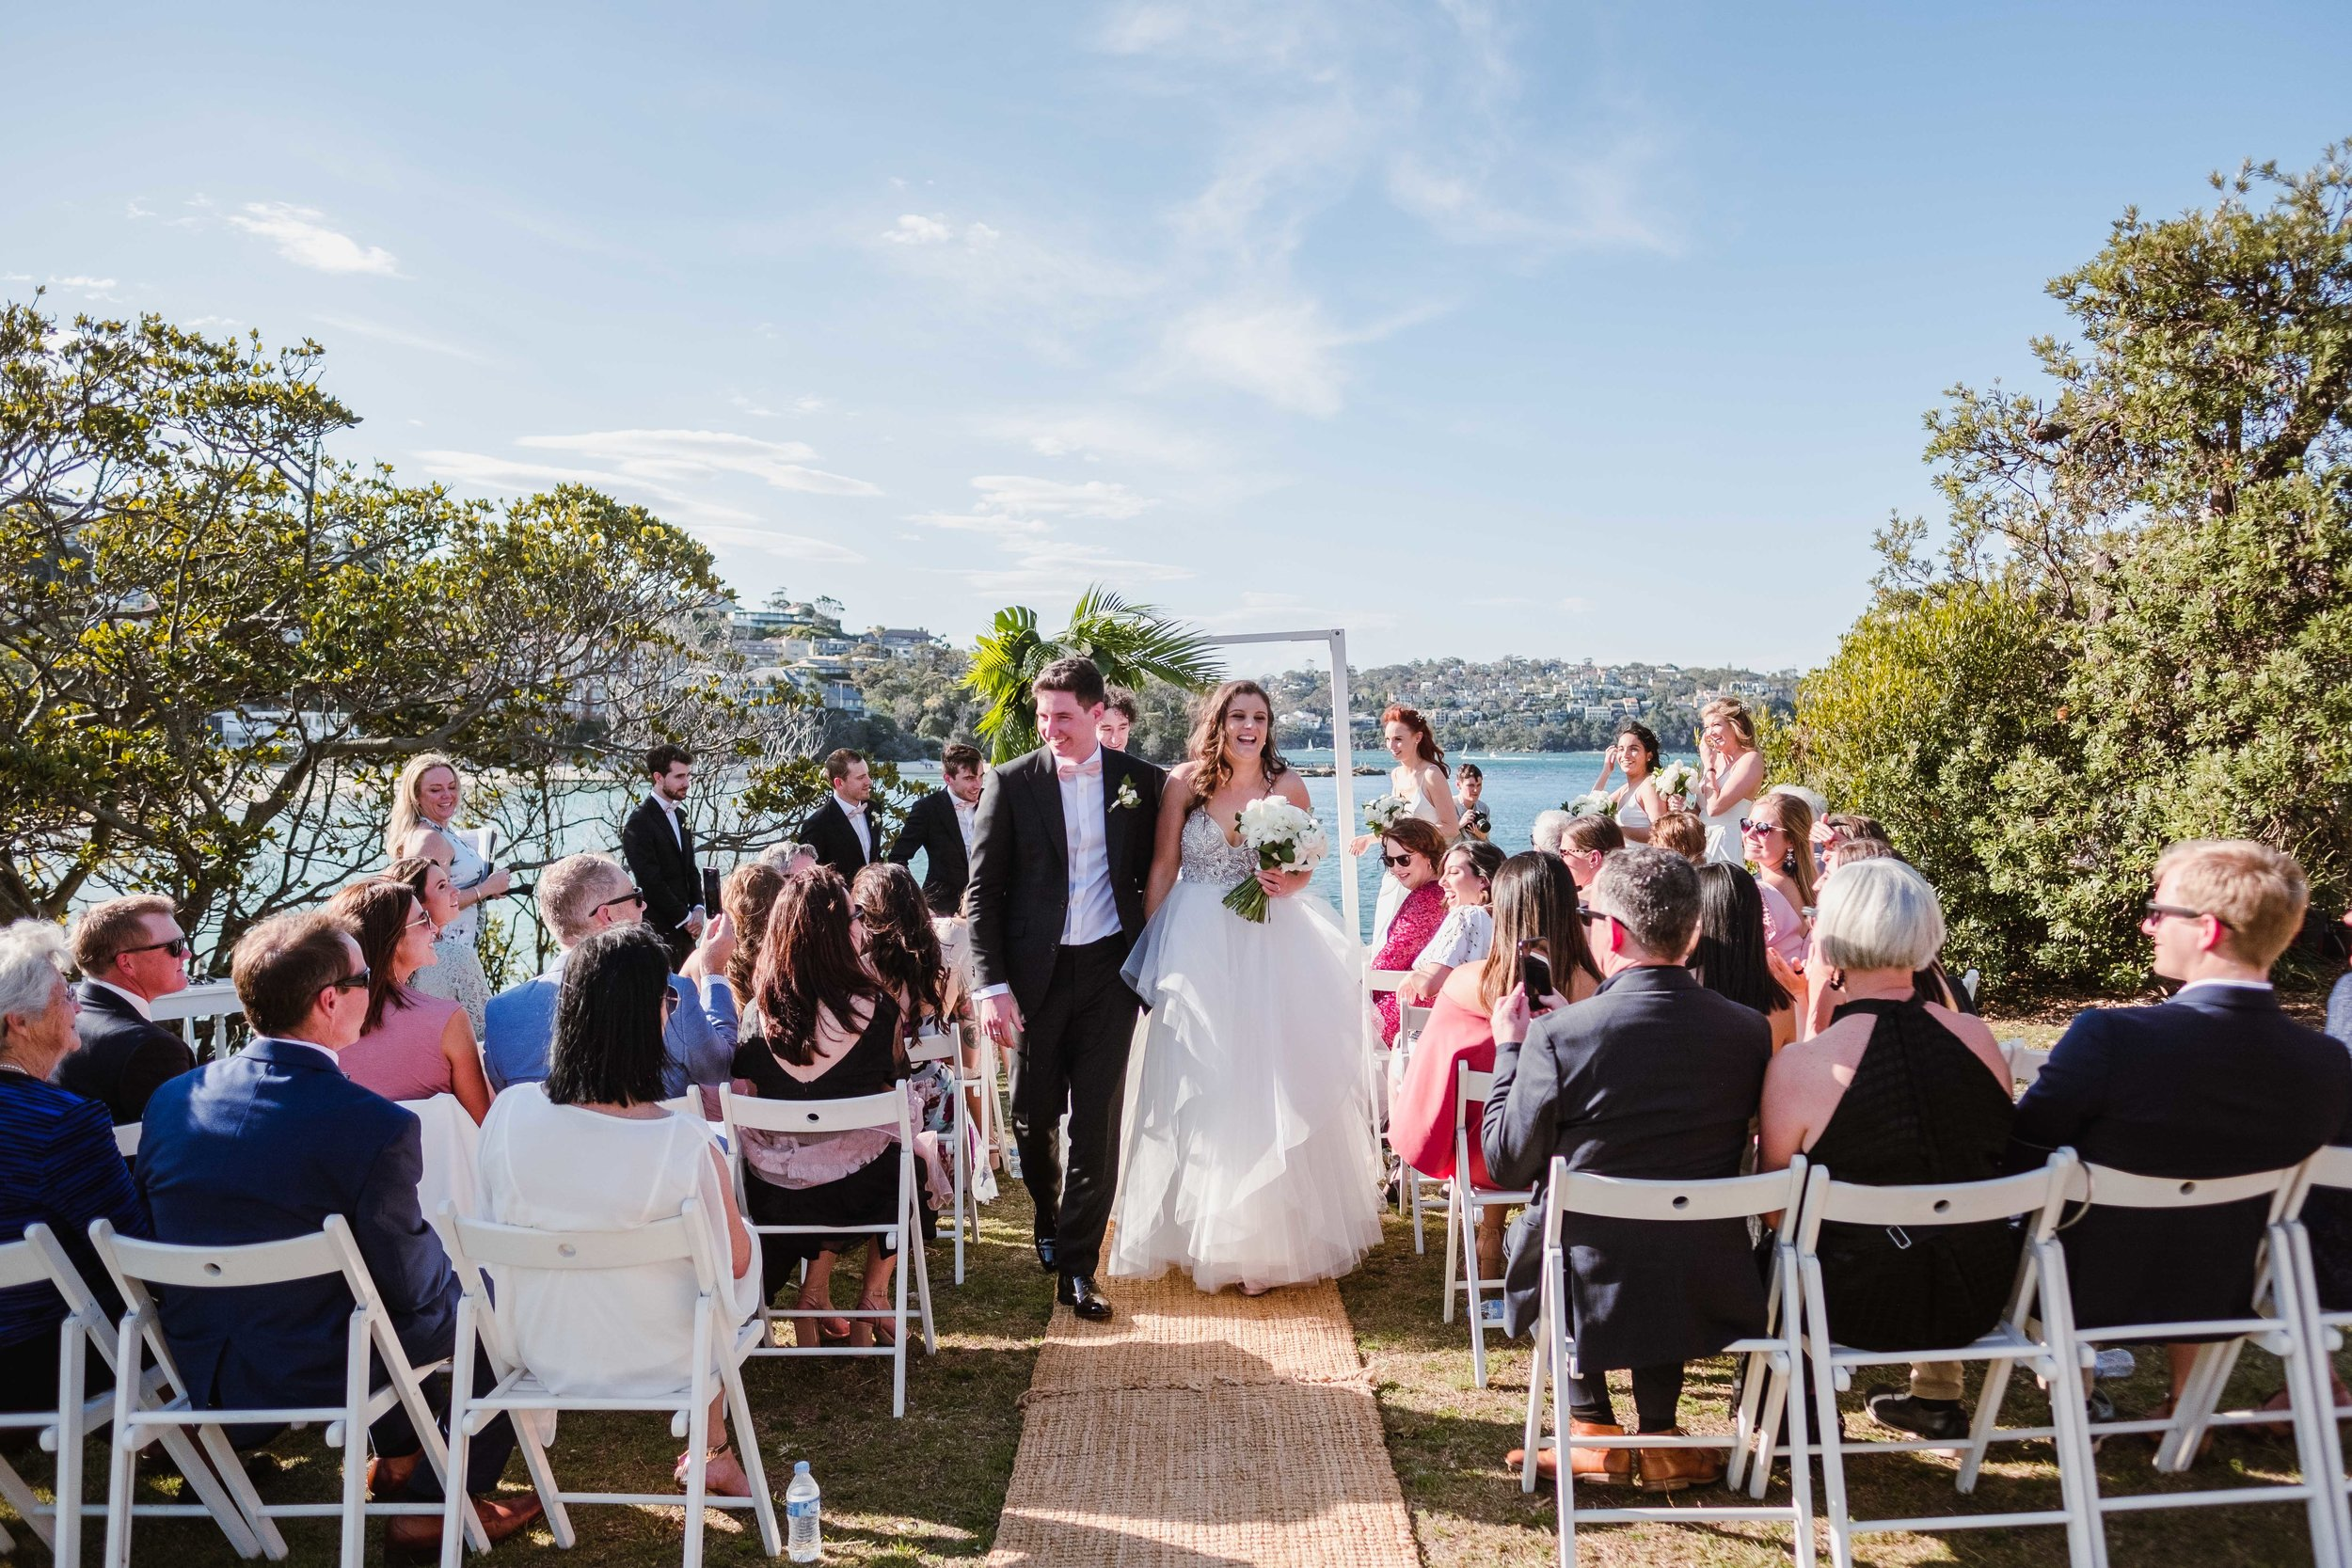 Miriam and Tom Balmoral Beach and Public Dining Room Wedding by Milton Gan Photography 15.jpg